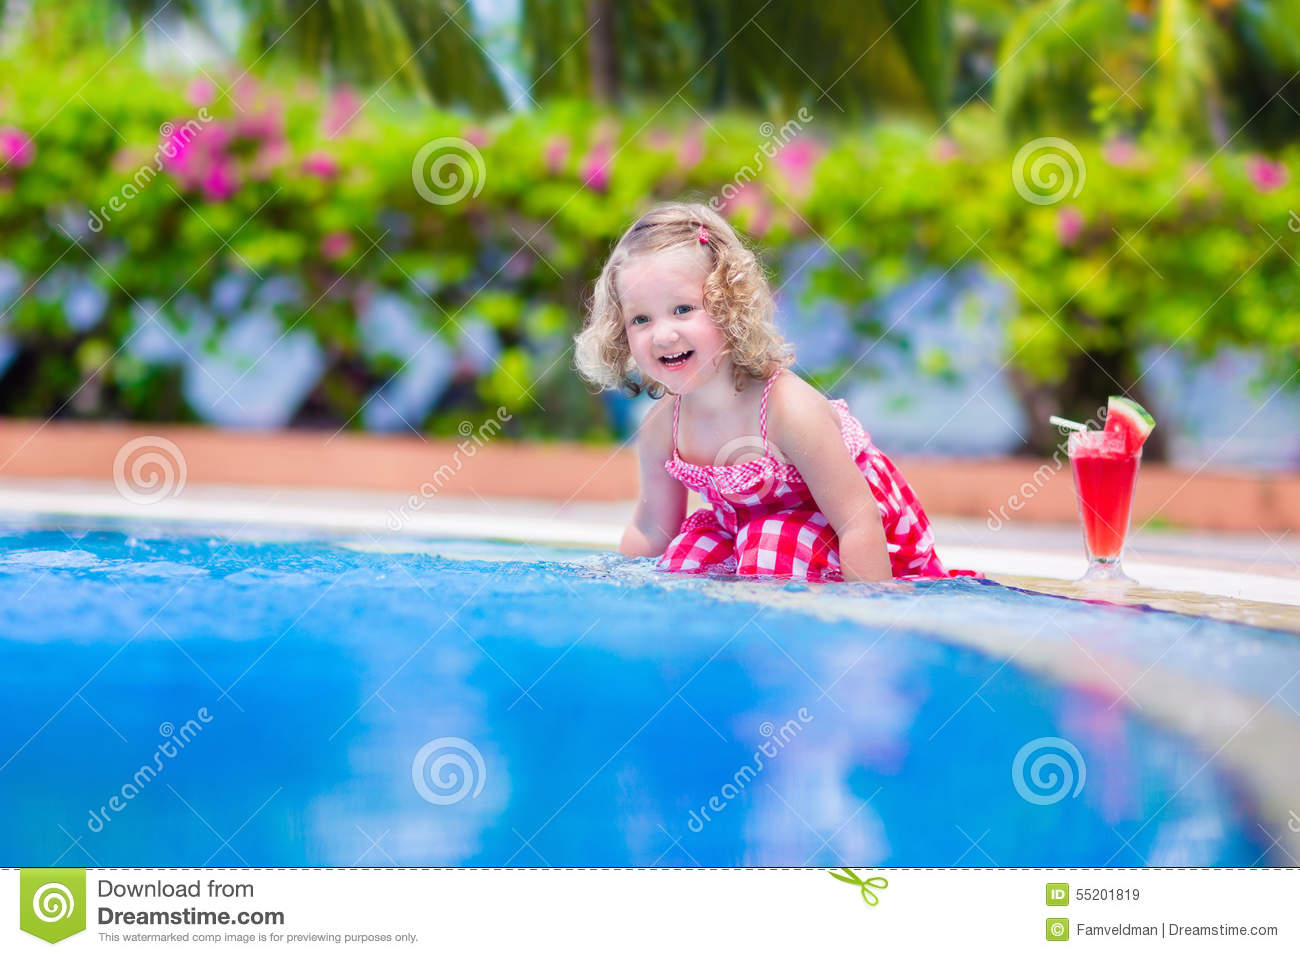 Little girl drinking juice at a swimming pool stock image image 55201819 How to make swimming pool water drinkable